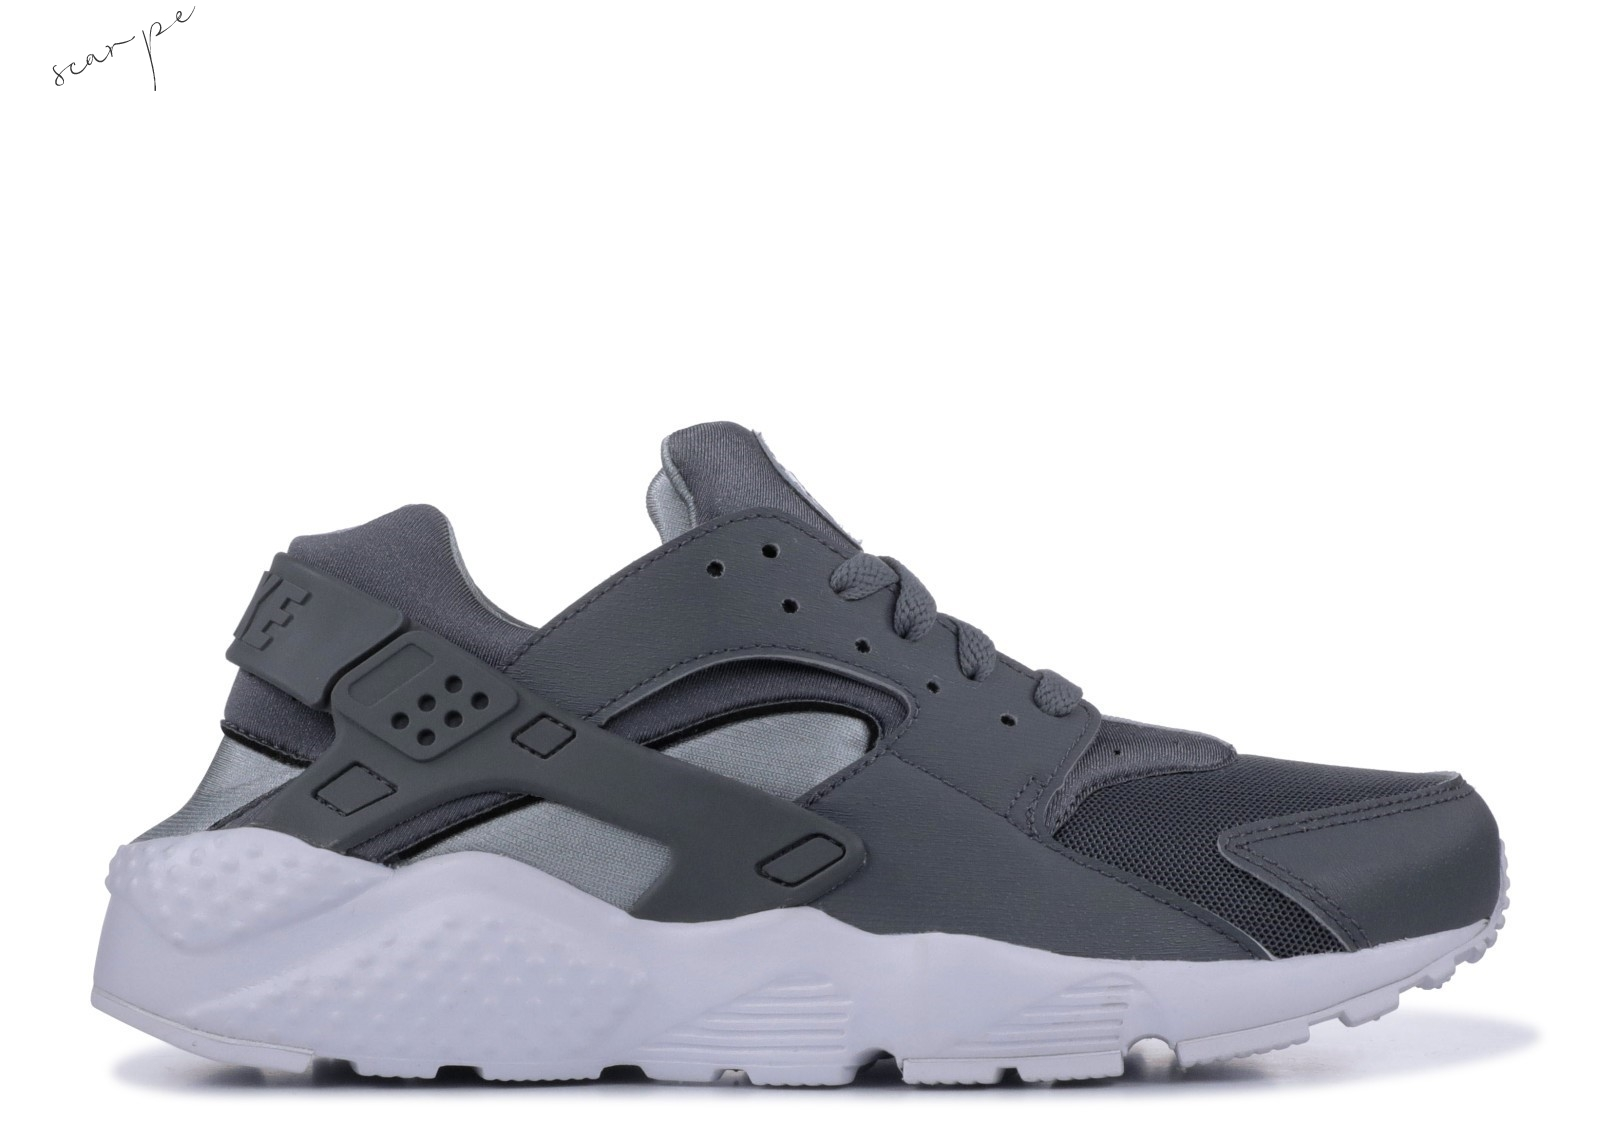 Vendite Nike Air Huarache Run Gs Gris (654275-012) Scarpe Online